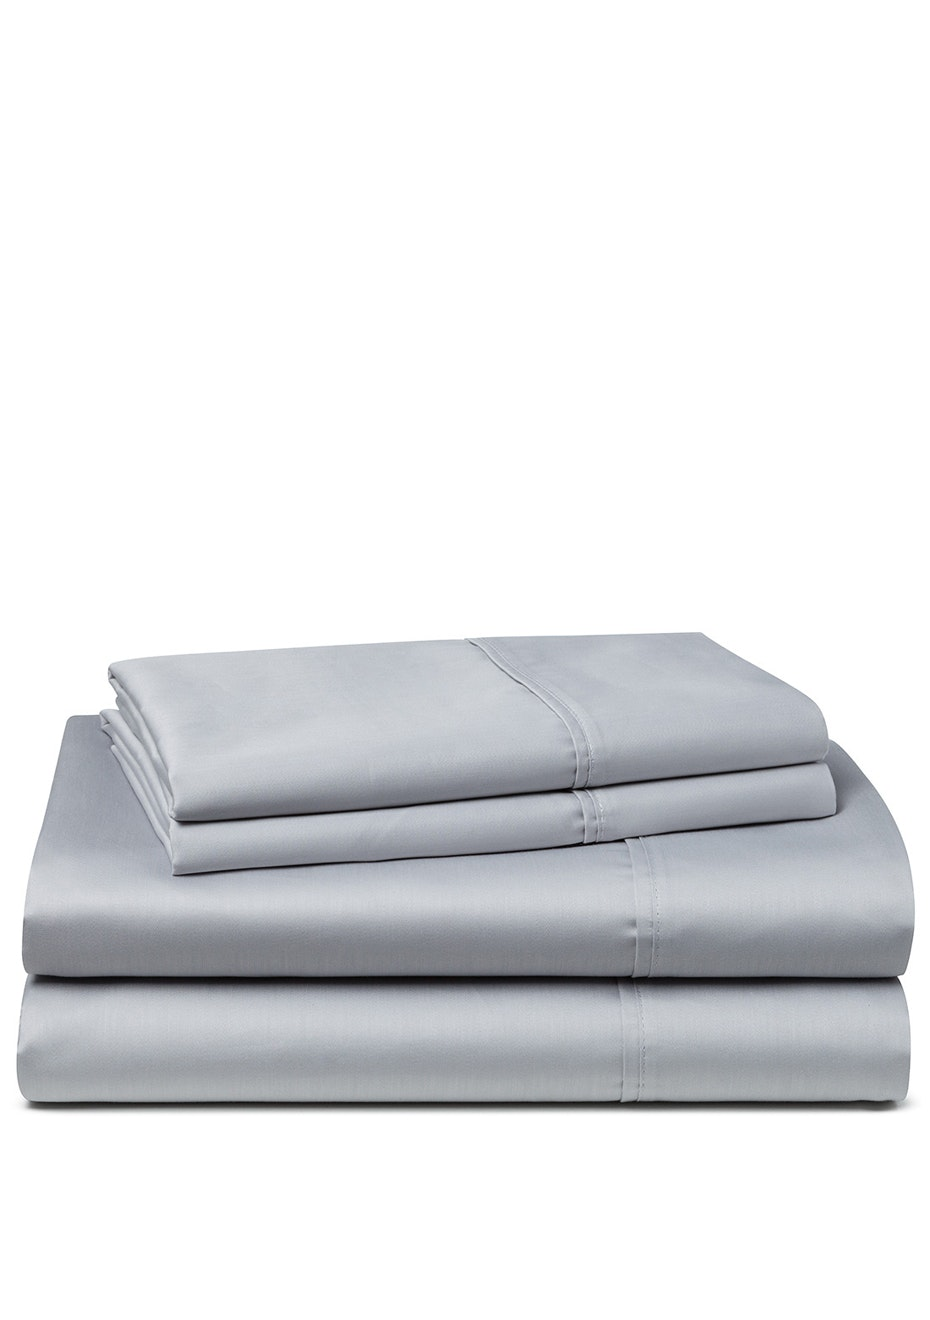 Palazzo Royale 1000 Thread Count Premium Blend Sheet Set King Bed Silver Silk